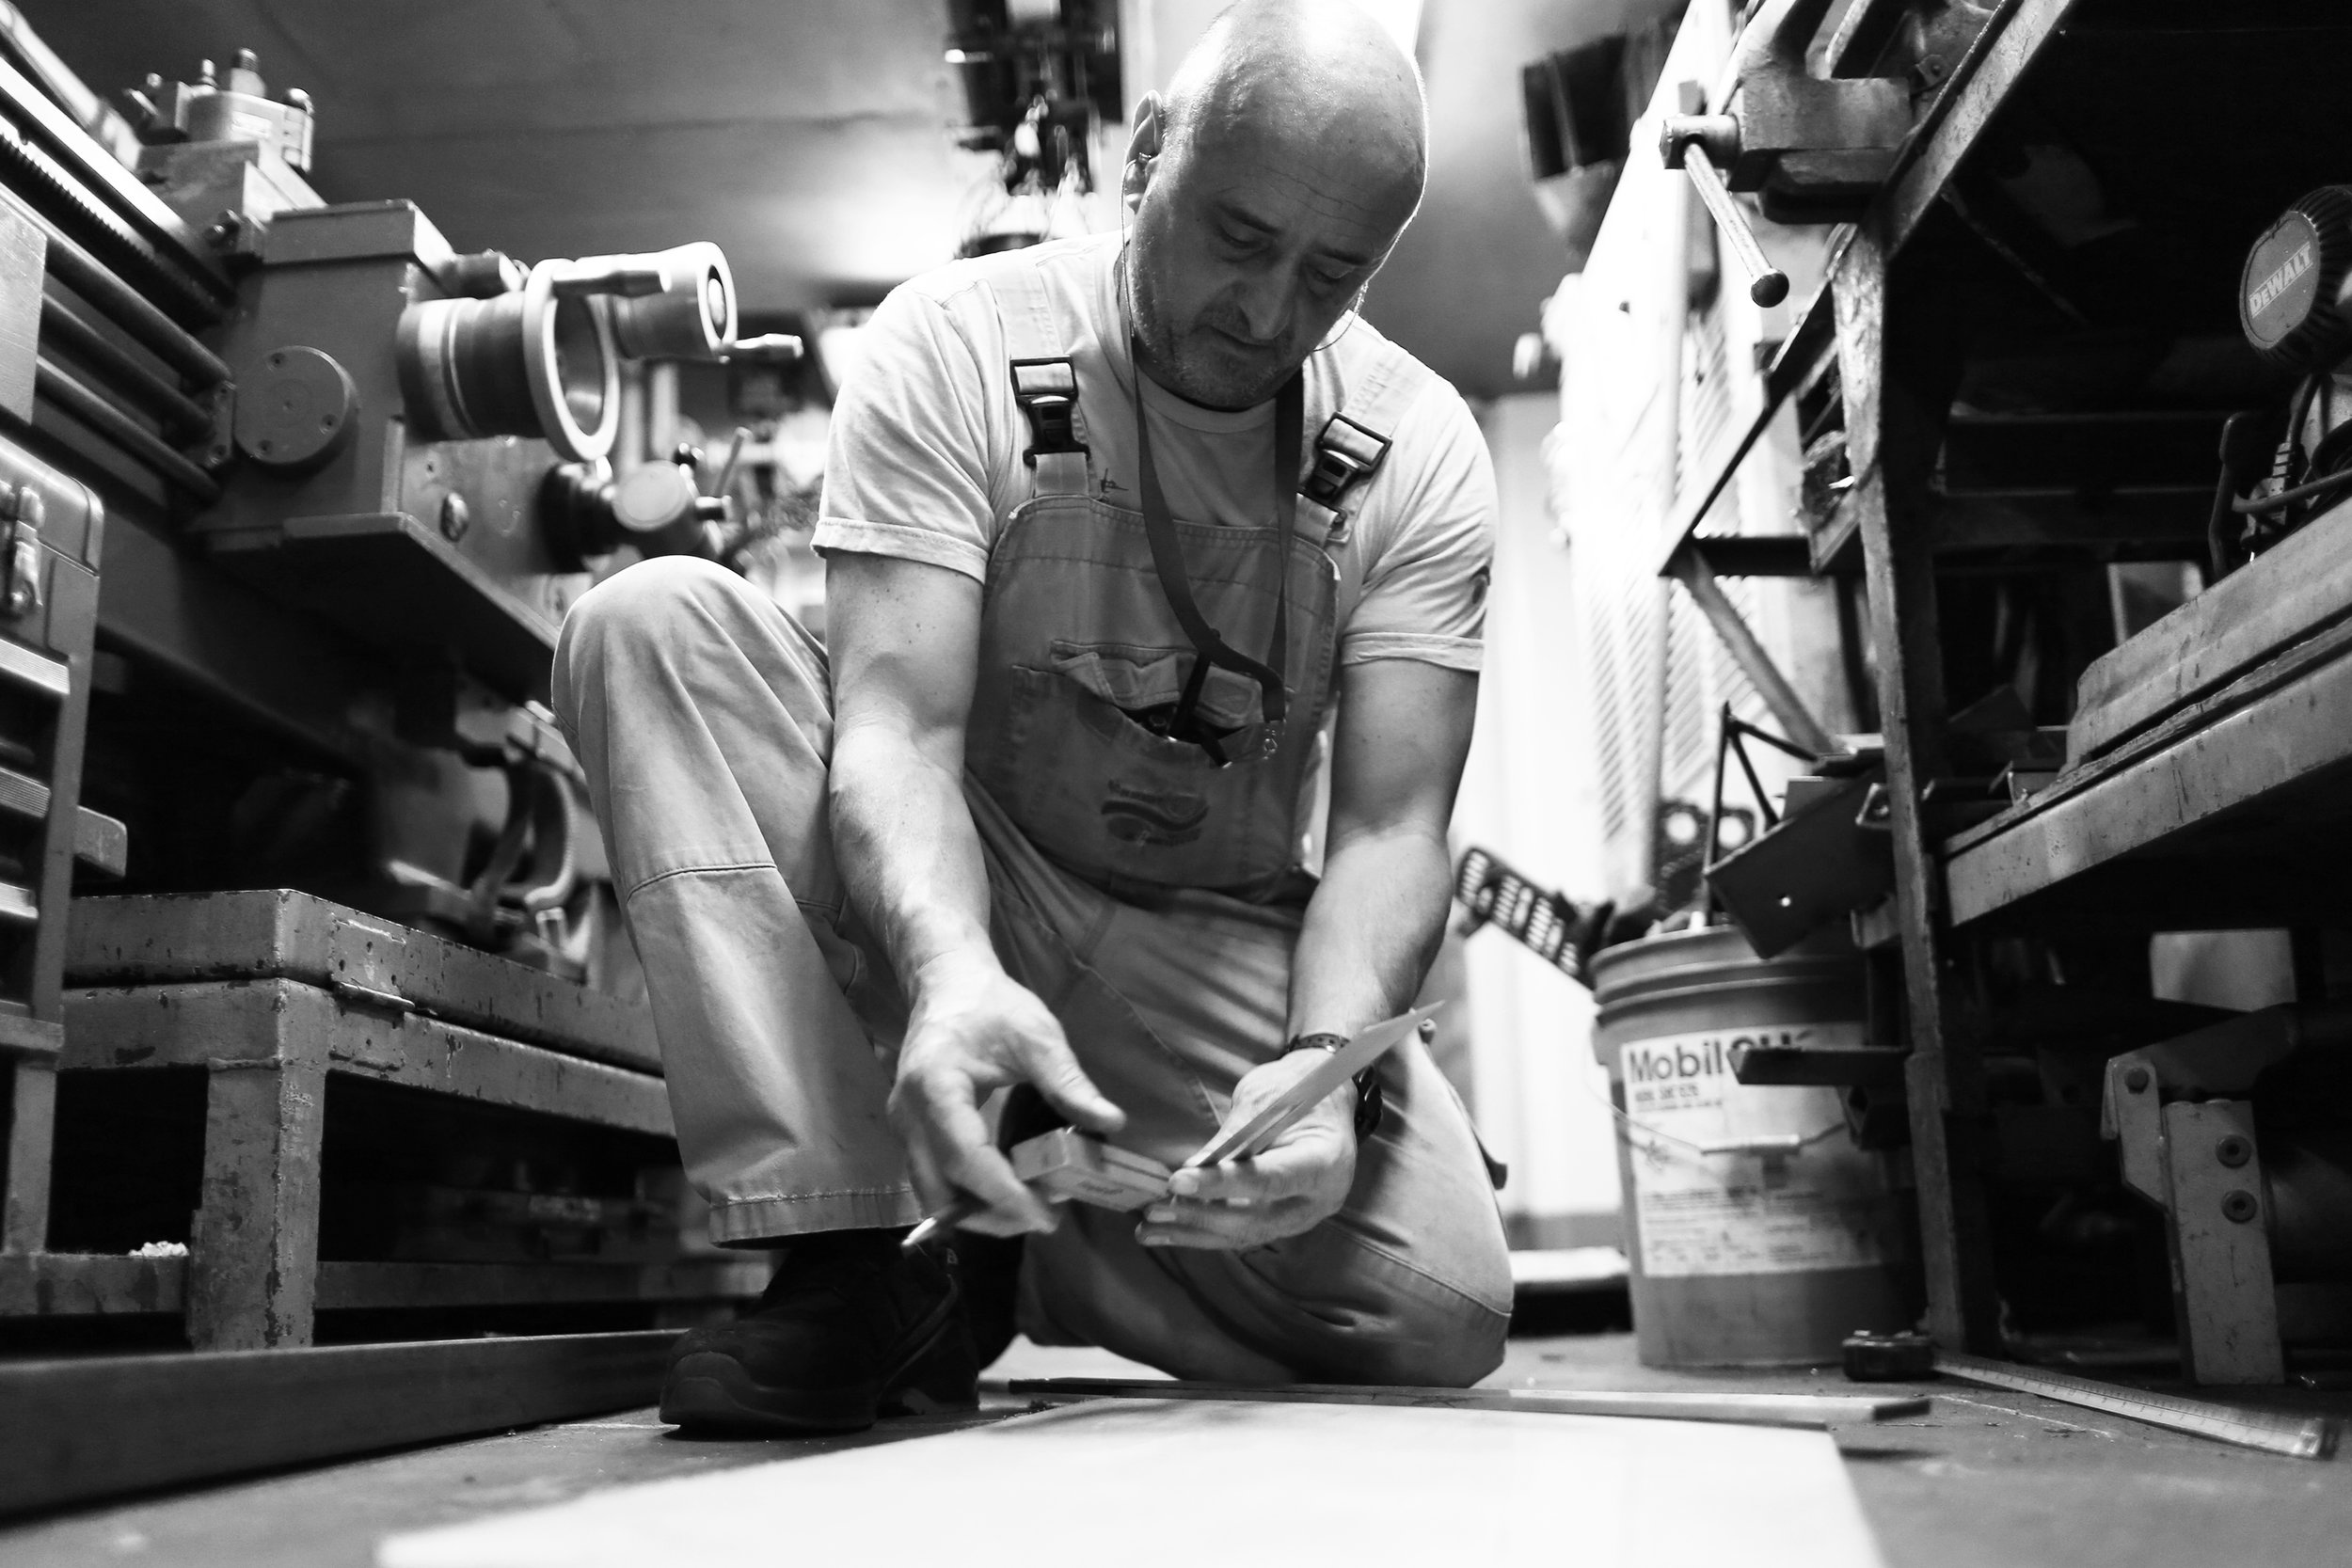 Documenting Miro hard at work on the floor of the engine room workshop.